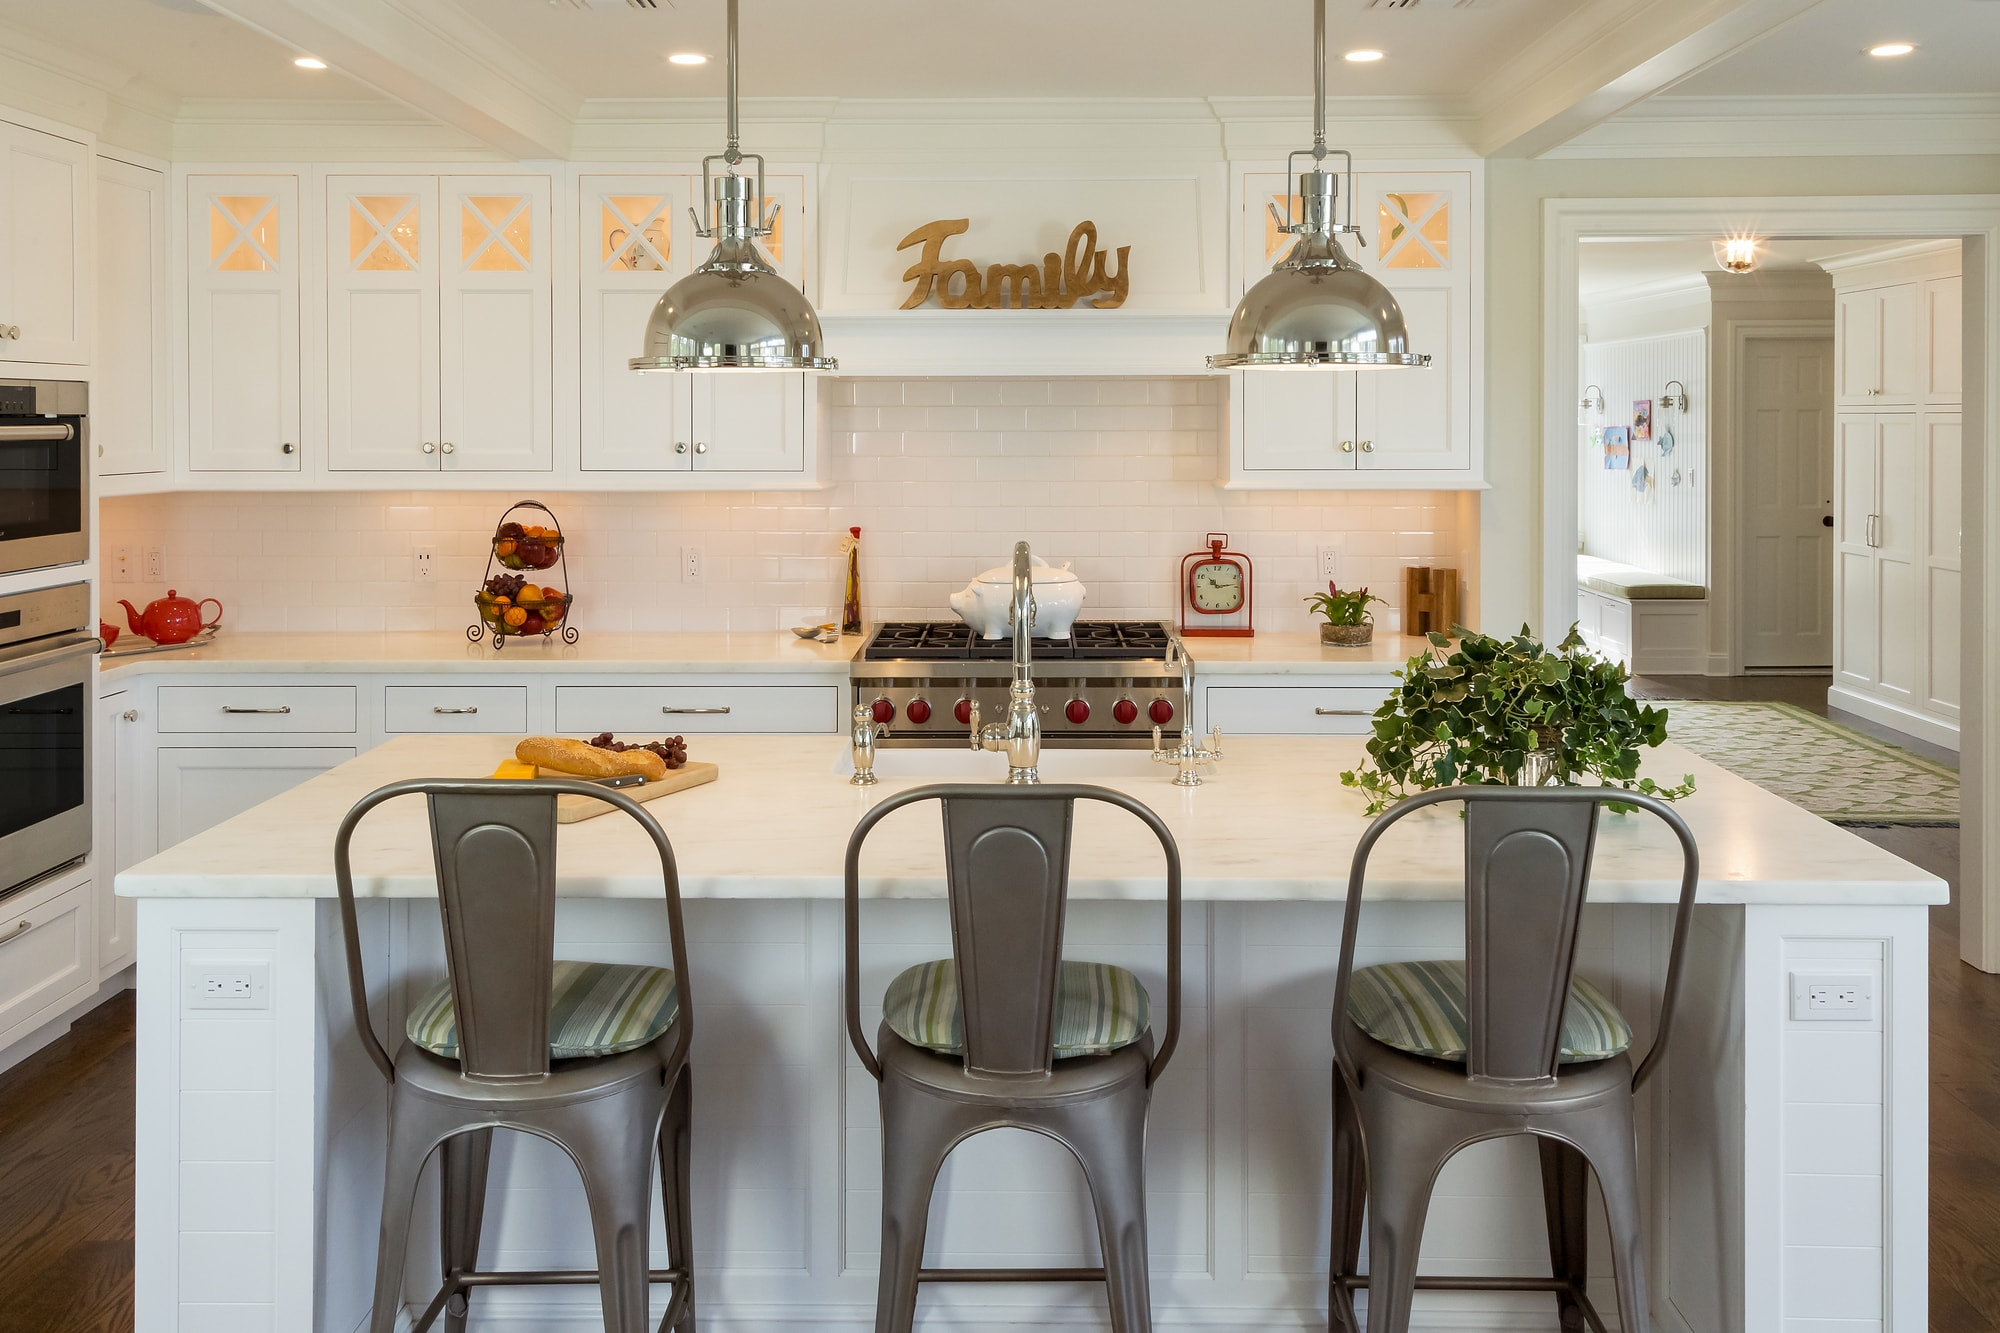 Transitional style kitchen with three pantry chairs at the kitchen island